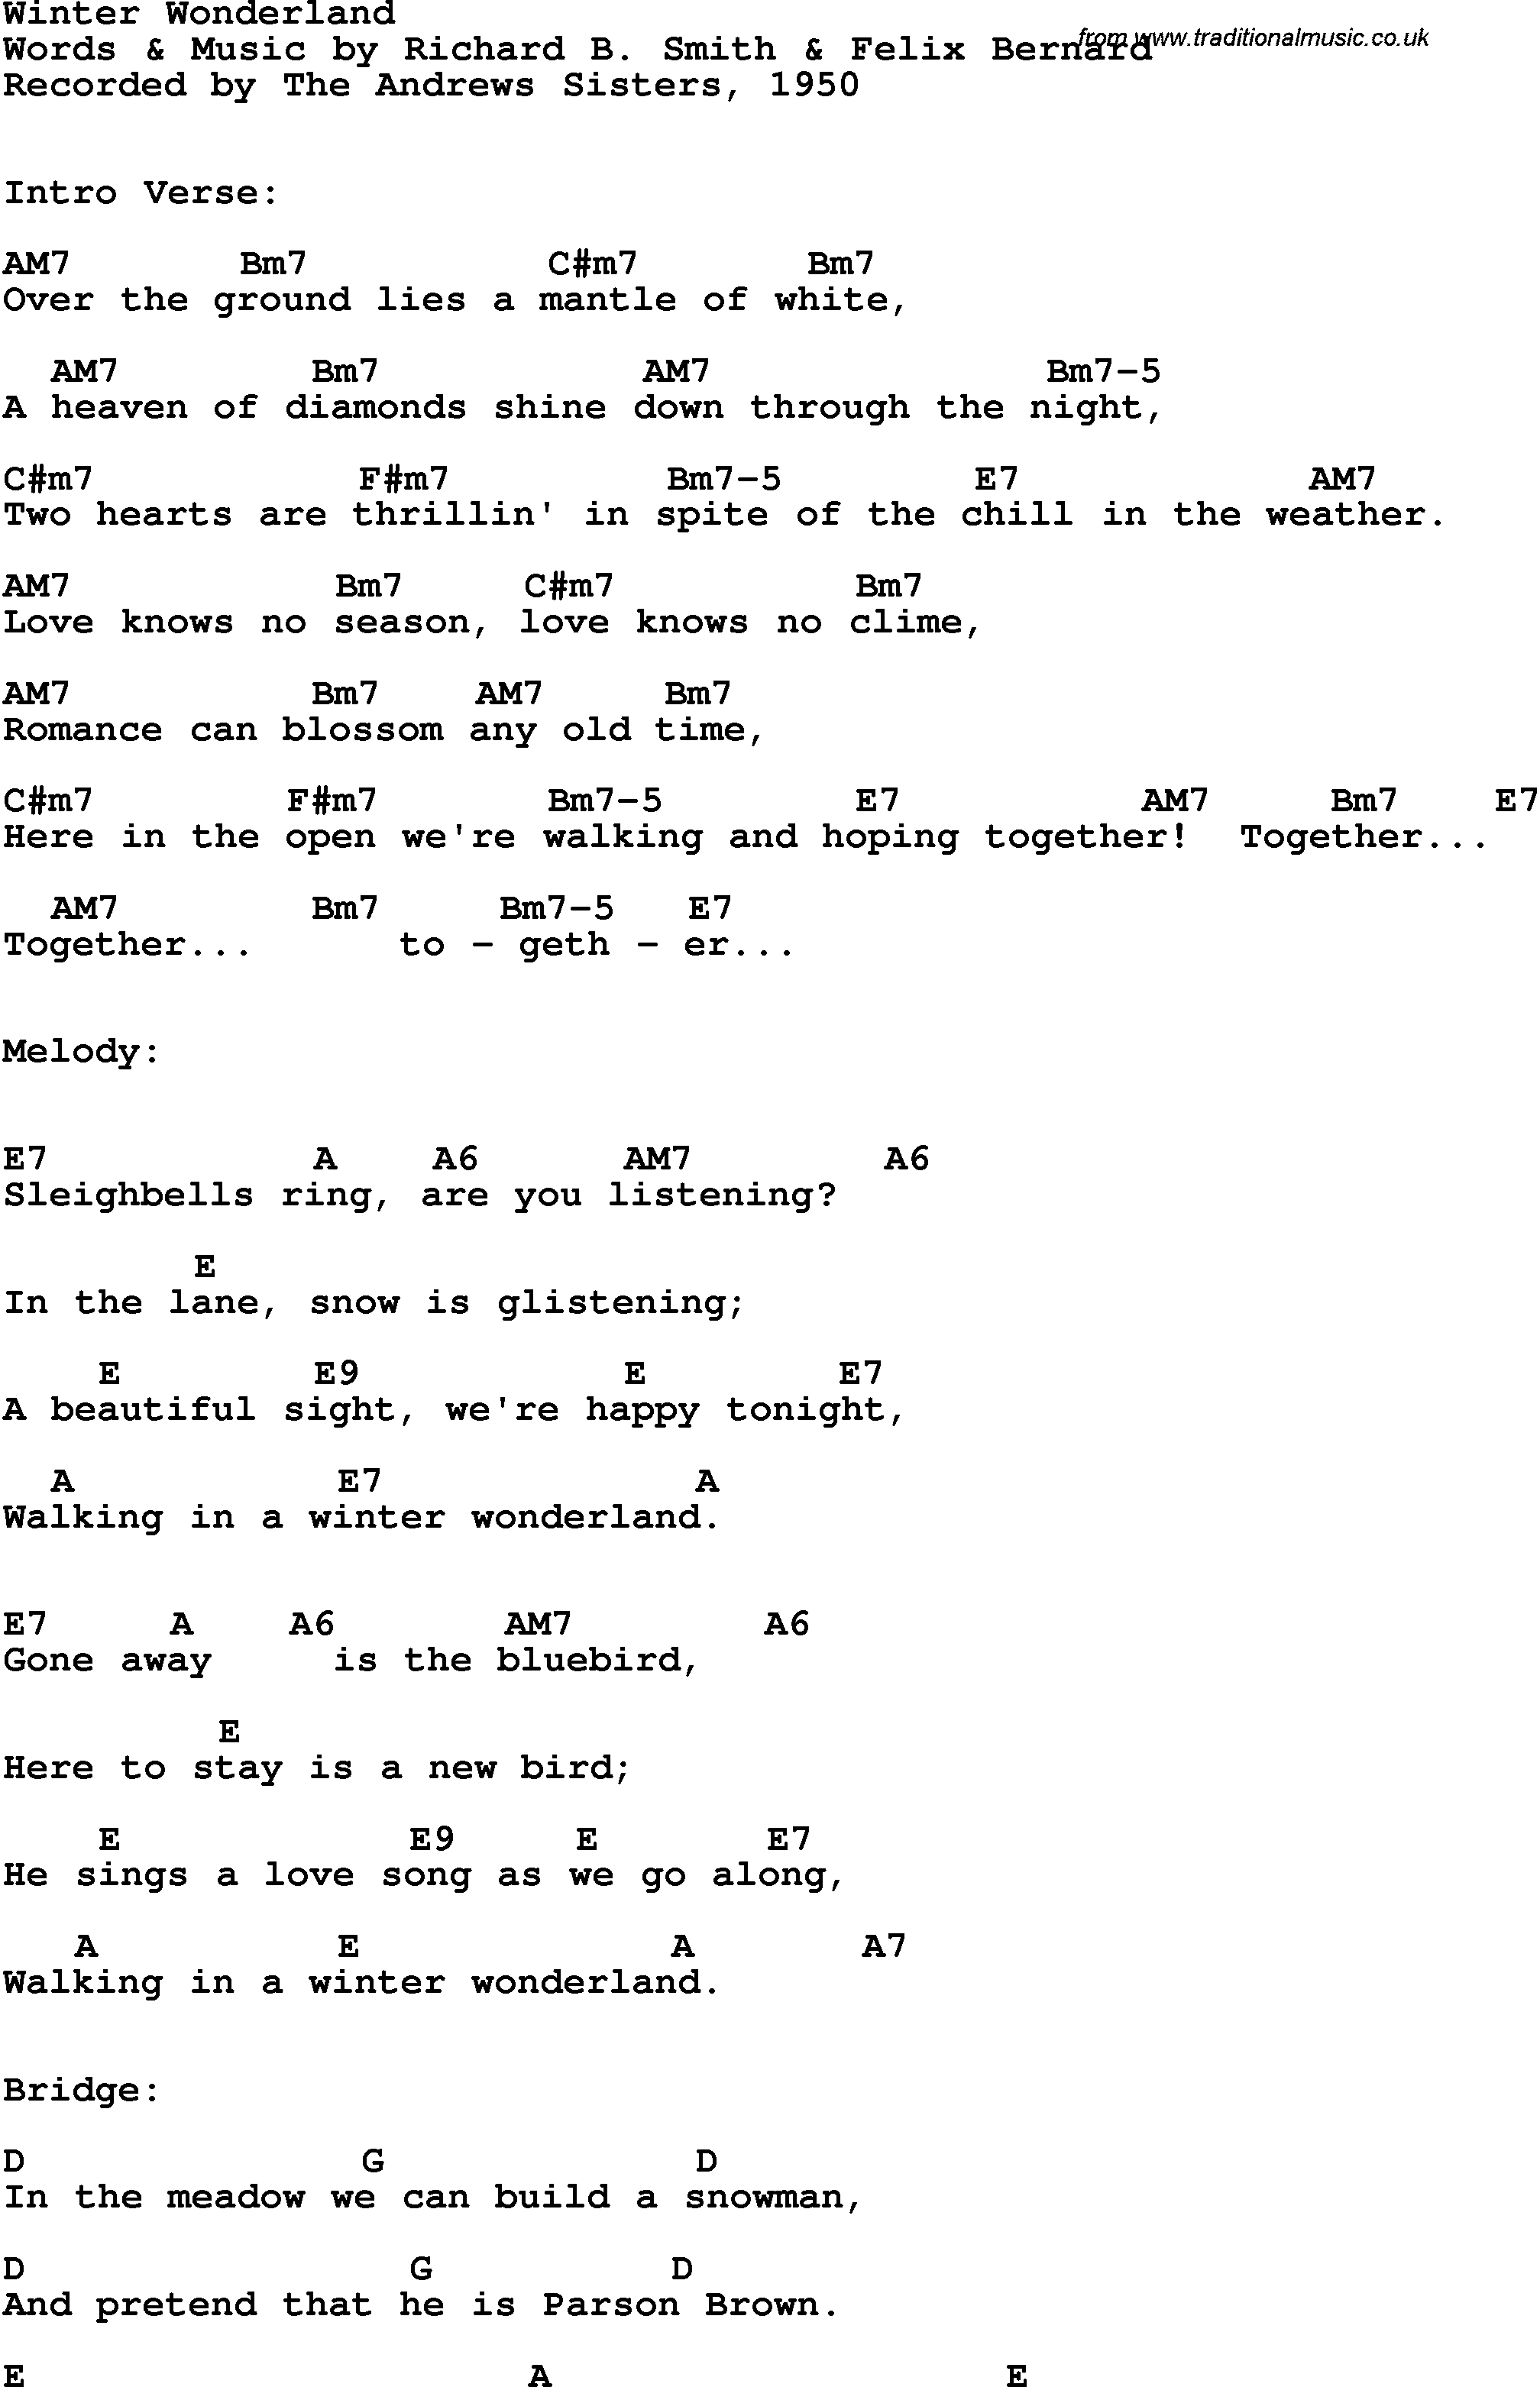 Song lyrics with guitar chords for Winter Wonderland - The Andrews Sisters, 1950